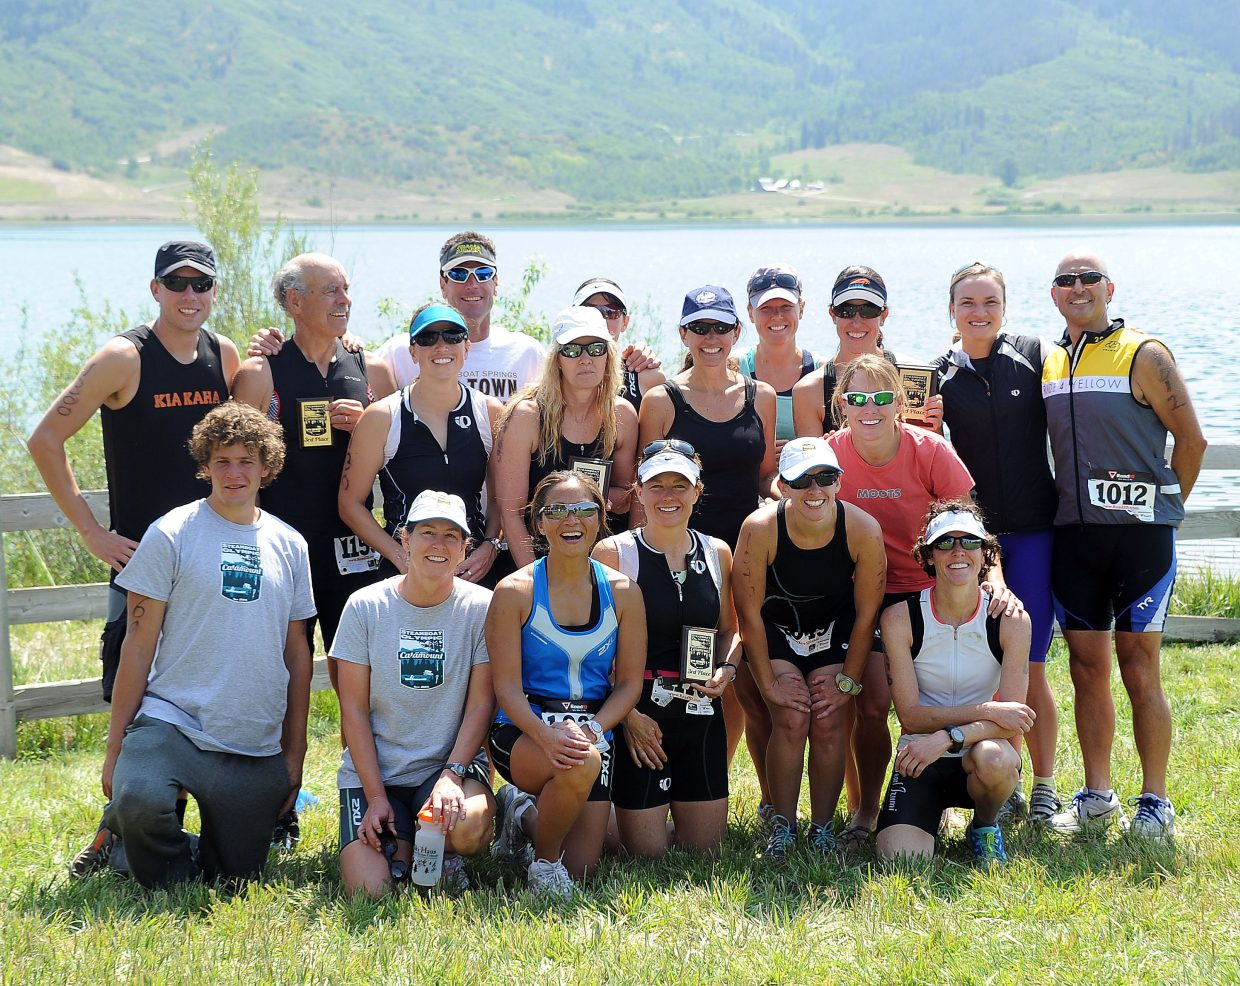 The Steamboat Springs Triathlon Club poses near the banks of Lake Catamount after Sunday's Steamboat Triathlon.